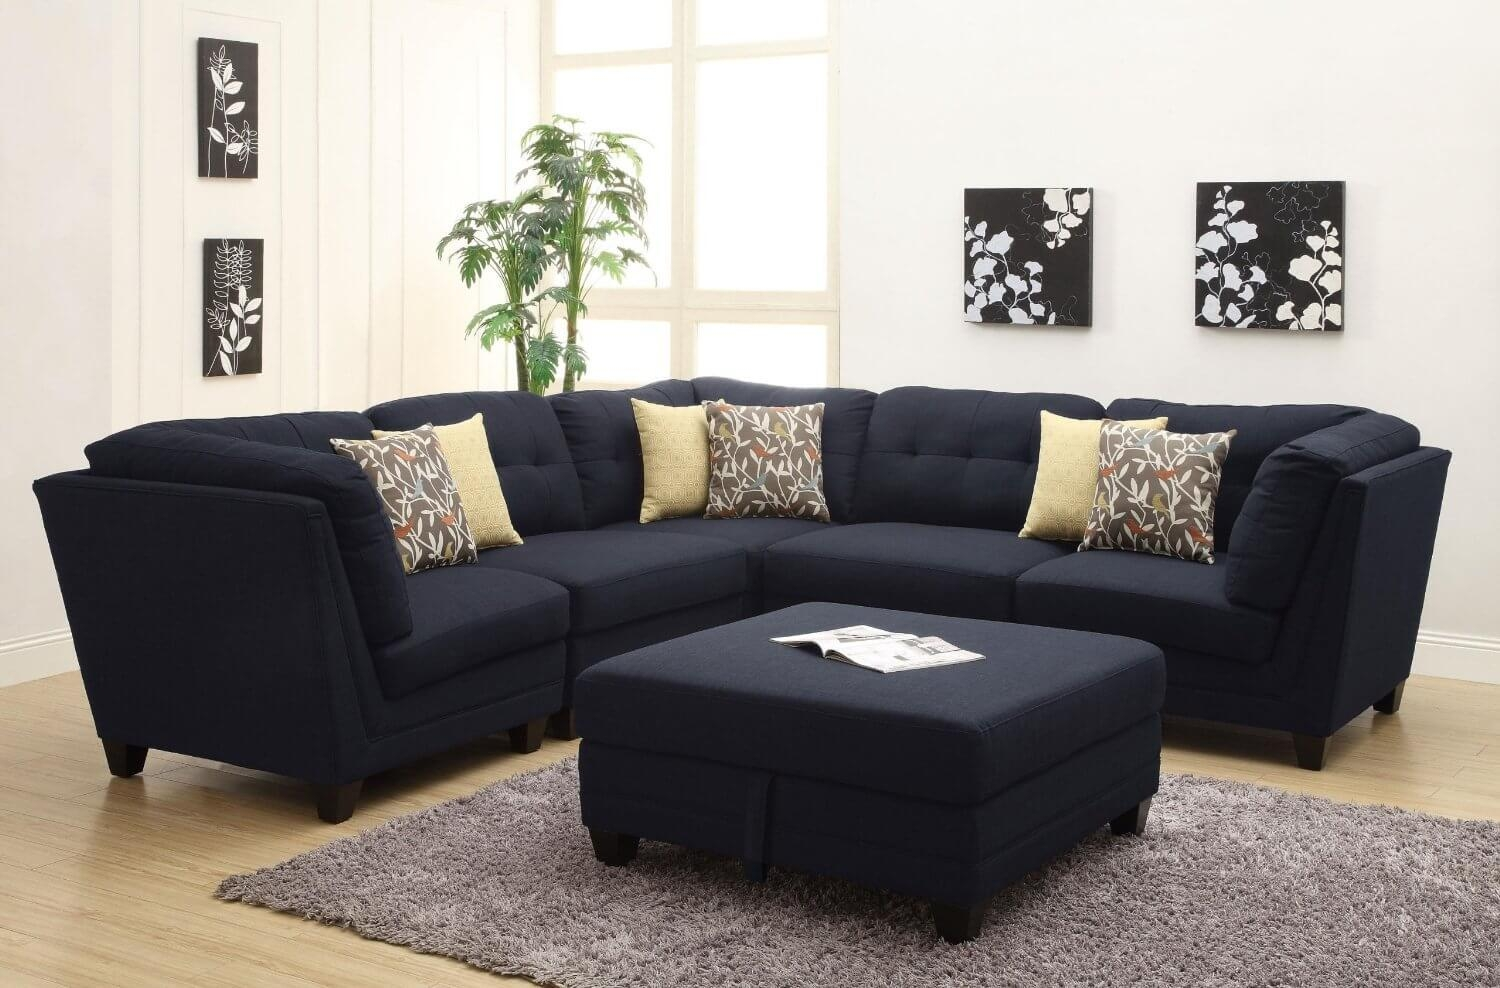 Furniture West Elm Tillary Ottoman West Elm Sectional Reviews – Ftfpgh For West Elm Sectionals (Image 4 of 20)